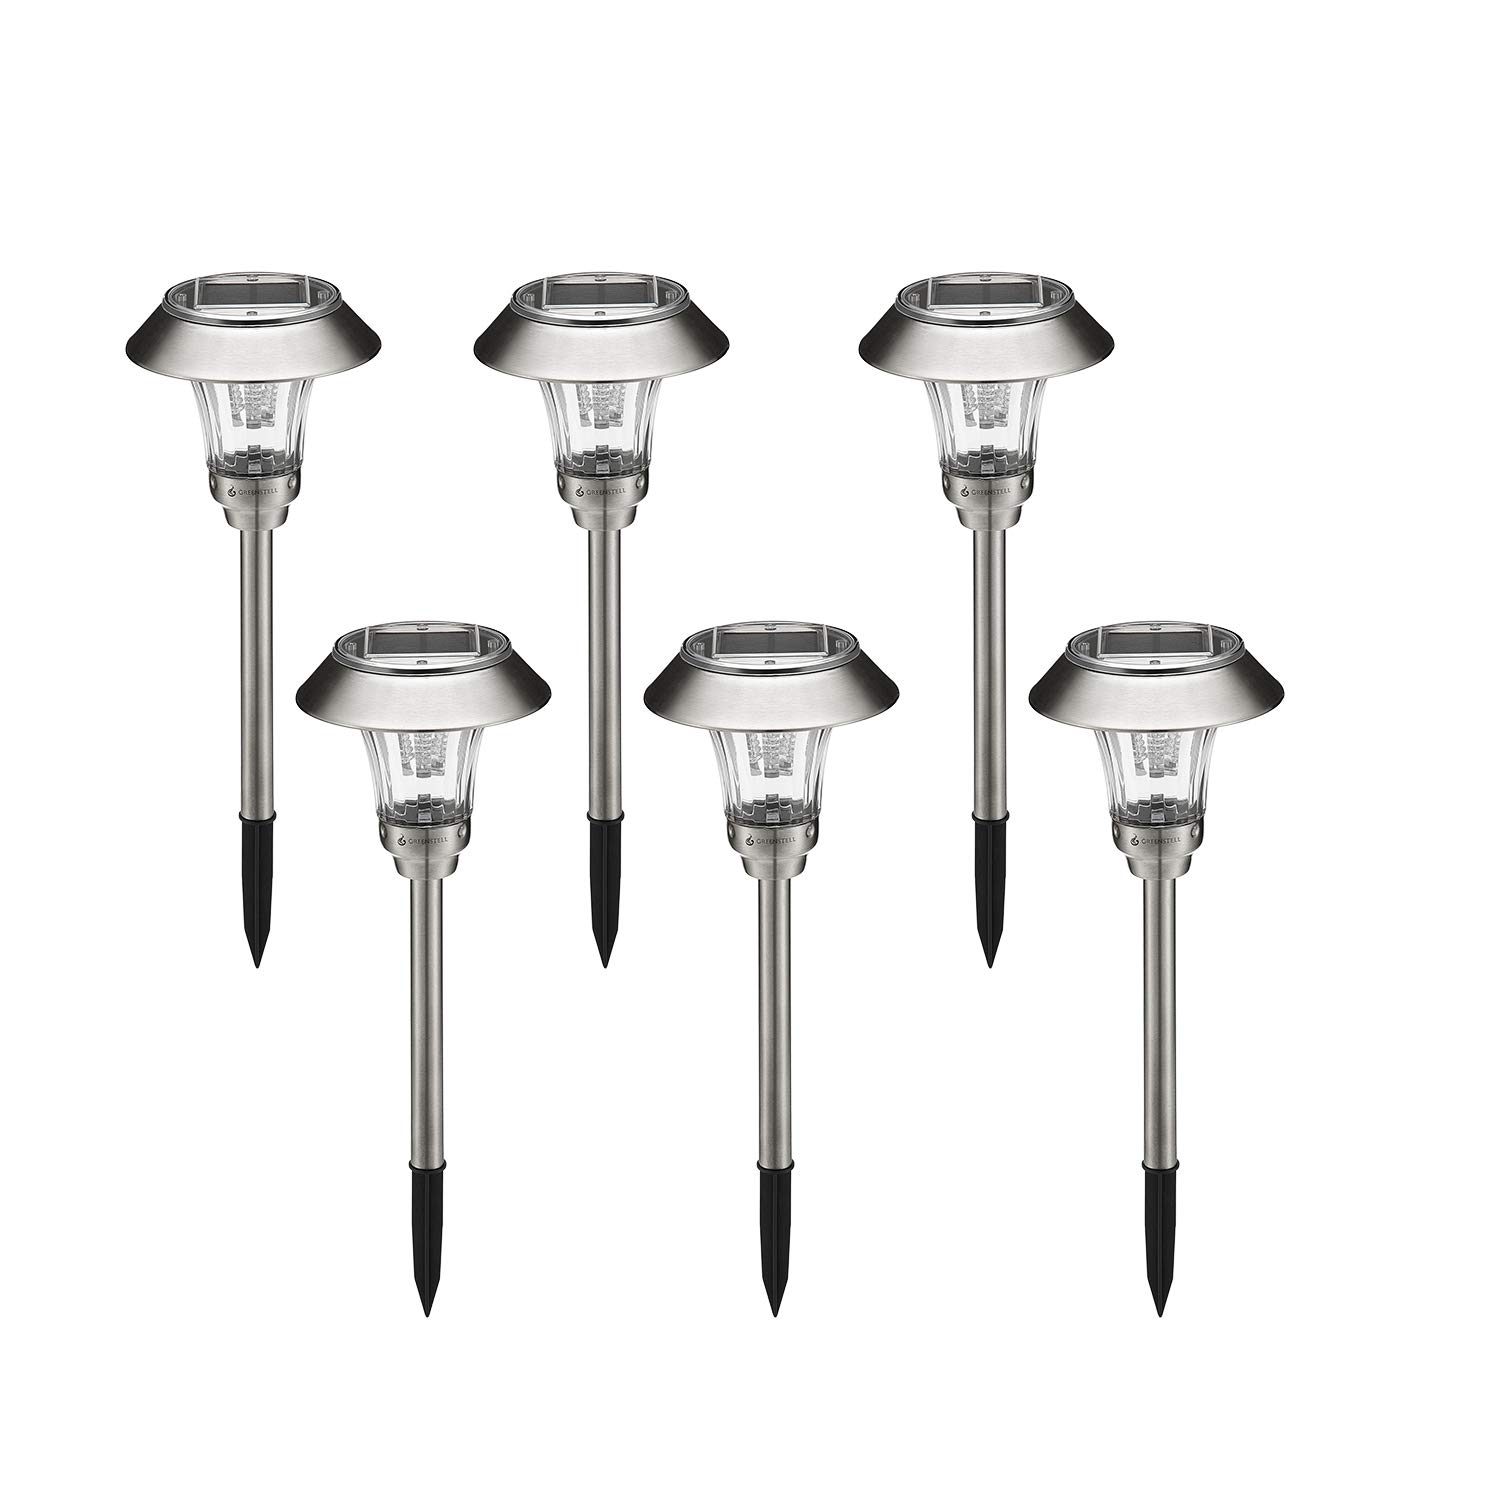 Greenstell Solar Garden Lights Outdoor,Super-Bright,Auto On/Off,Waterproof,LED Solar Powered Pathway Light for Garden,Landscape,Path,Yard,Patio,Driveway,Walkway,Sliver(6 Pack) by Greenstell